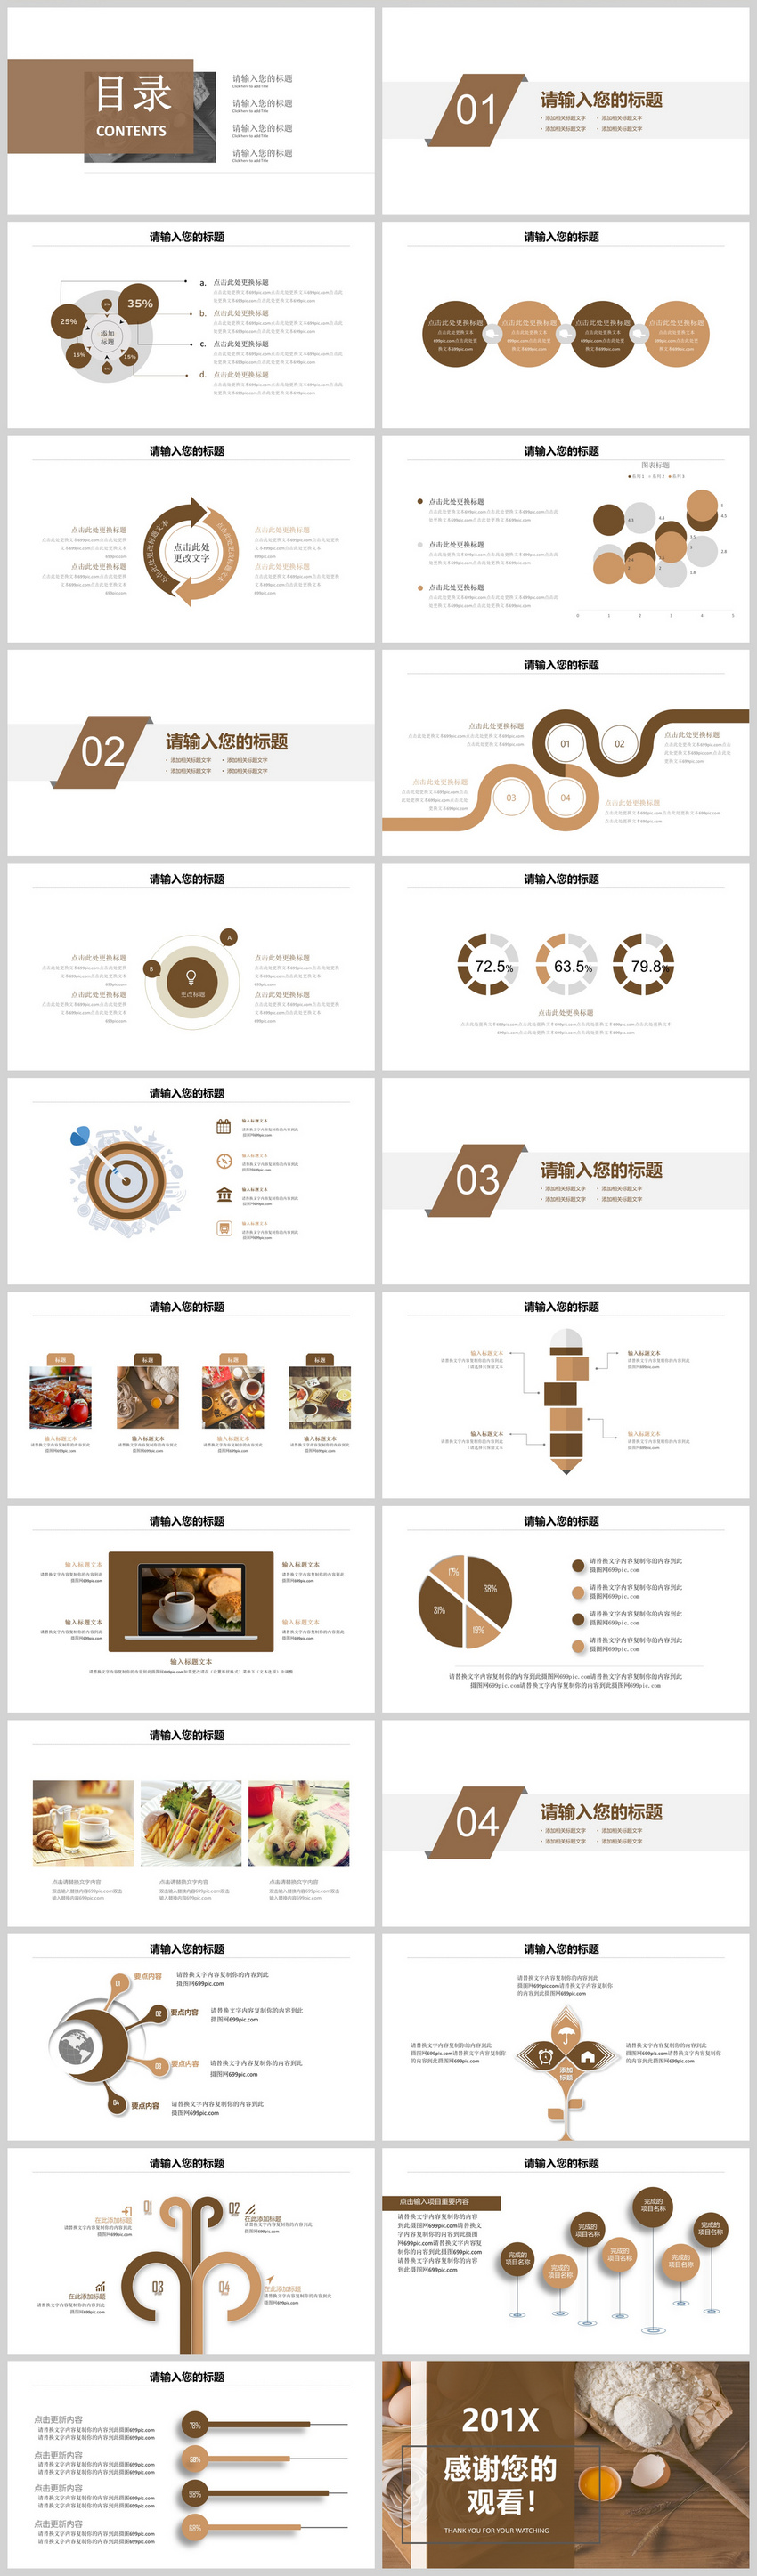 Nutrition Breakfast Product Album Ppt Template Powerpoint Templete Ppt Free Download 400119347 Lovepik Com